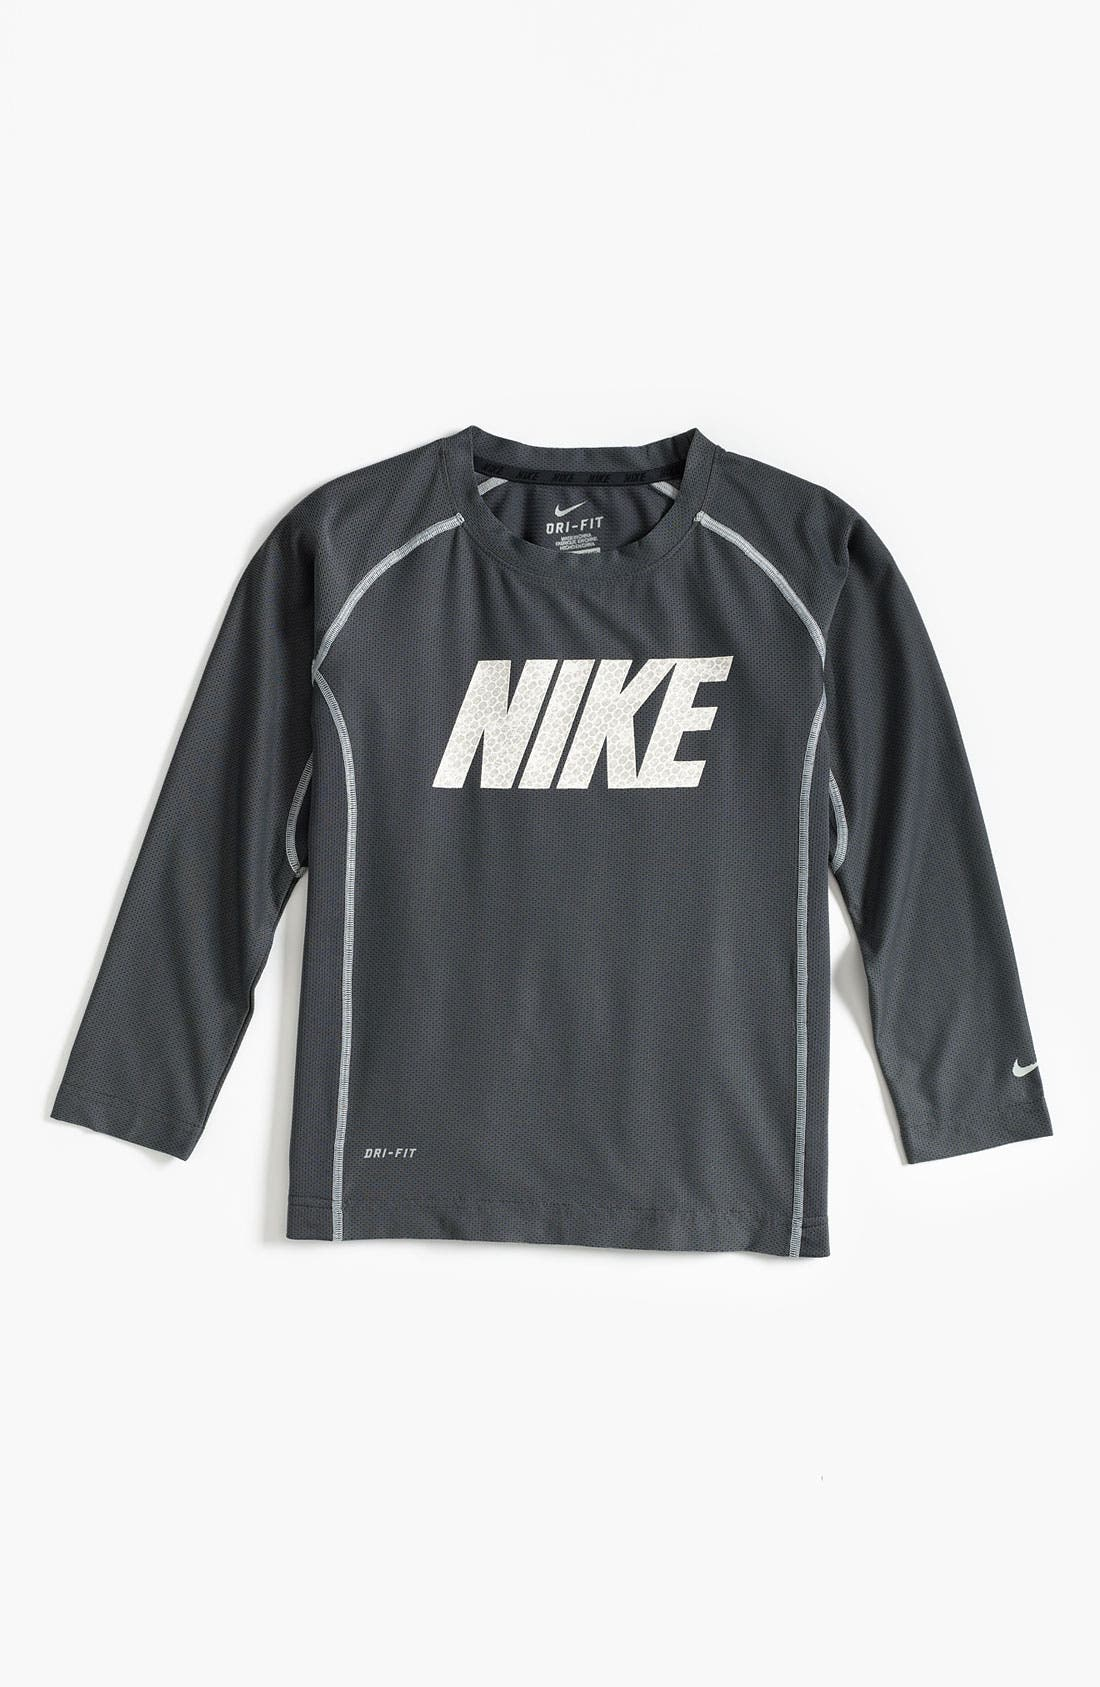 Alternate Image 1 Selected - Nike 'Speed Fly' Top (Little Boys)